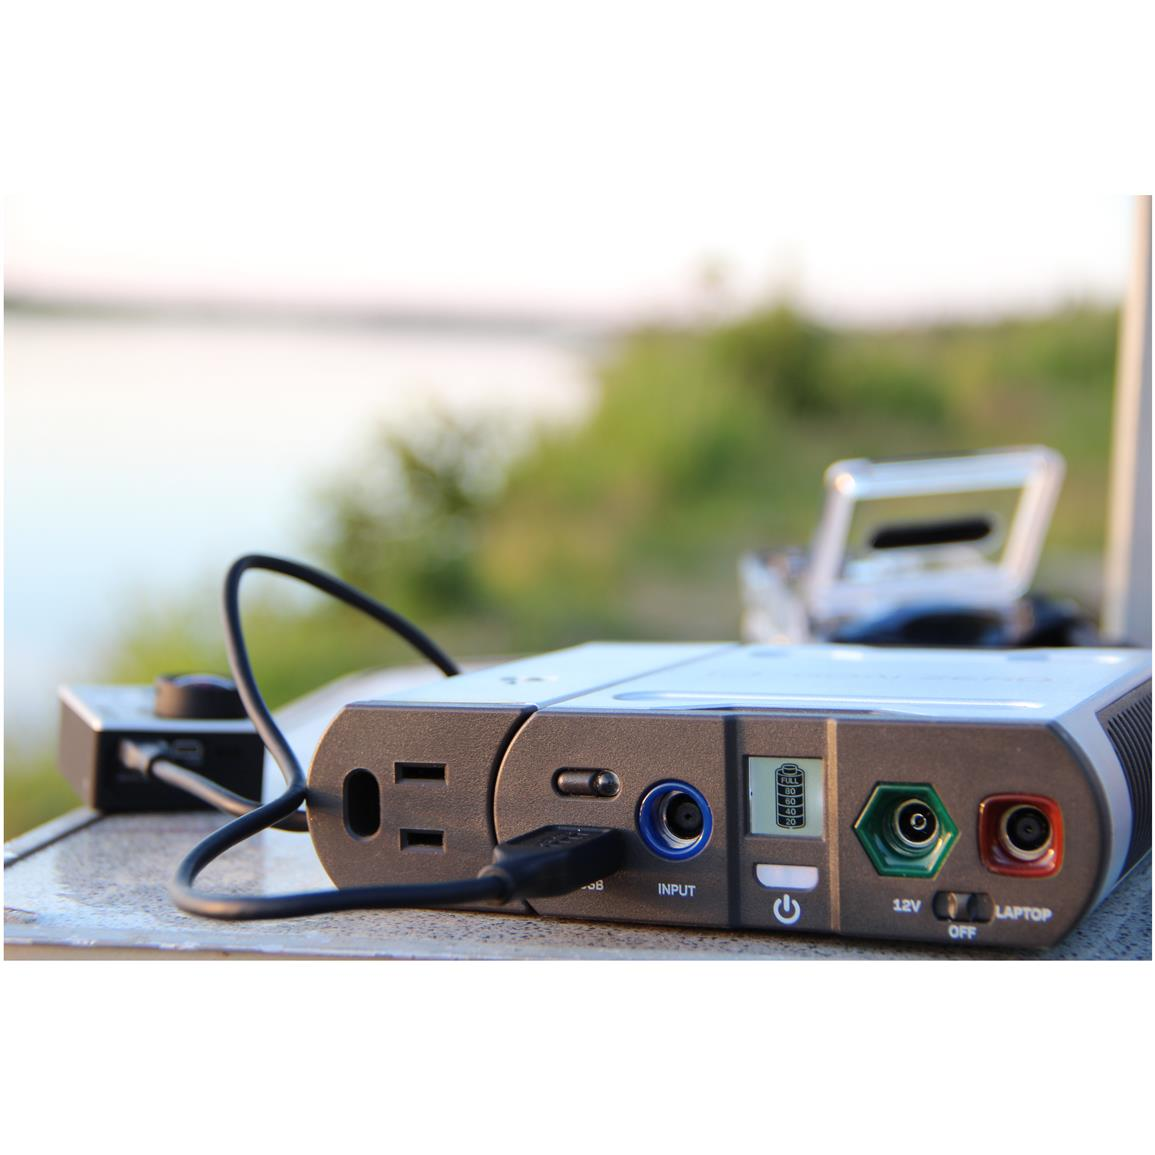 Sidecar port (input): 9-13V, up to 10A (120W max)